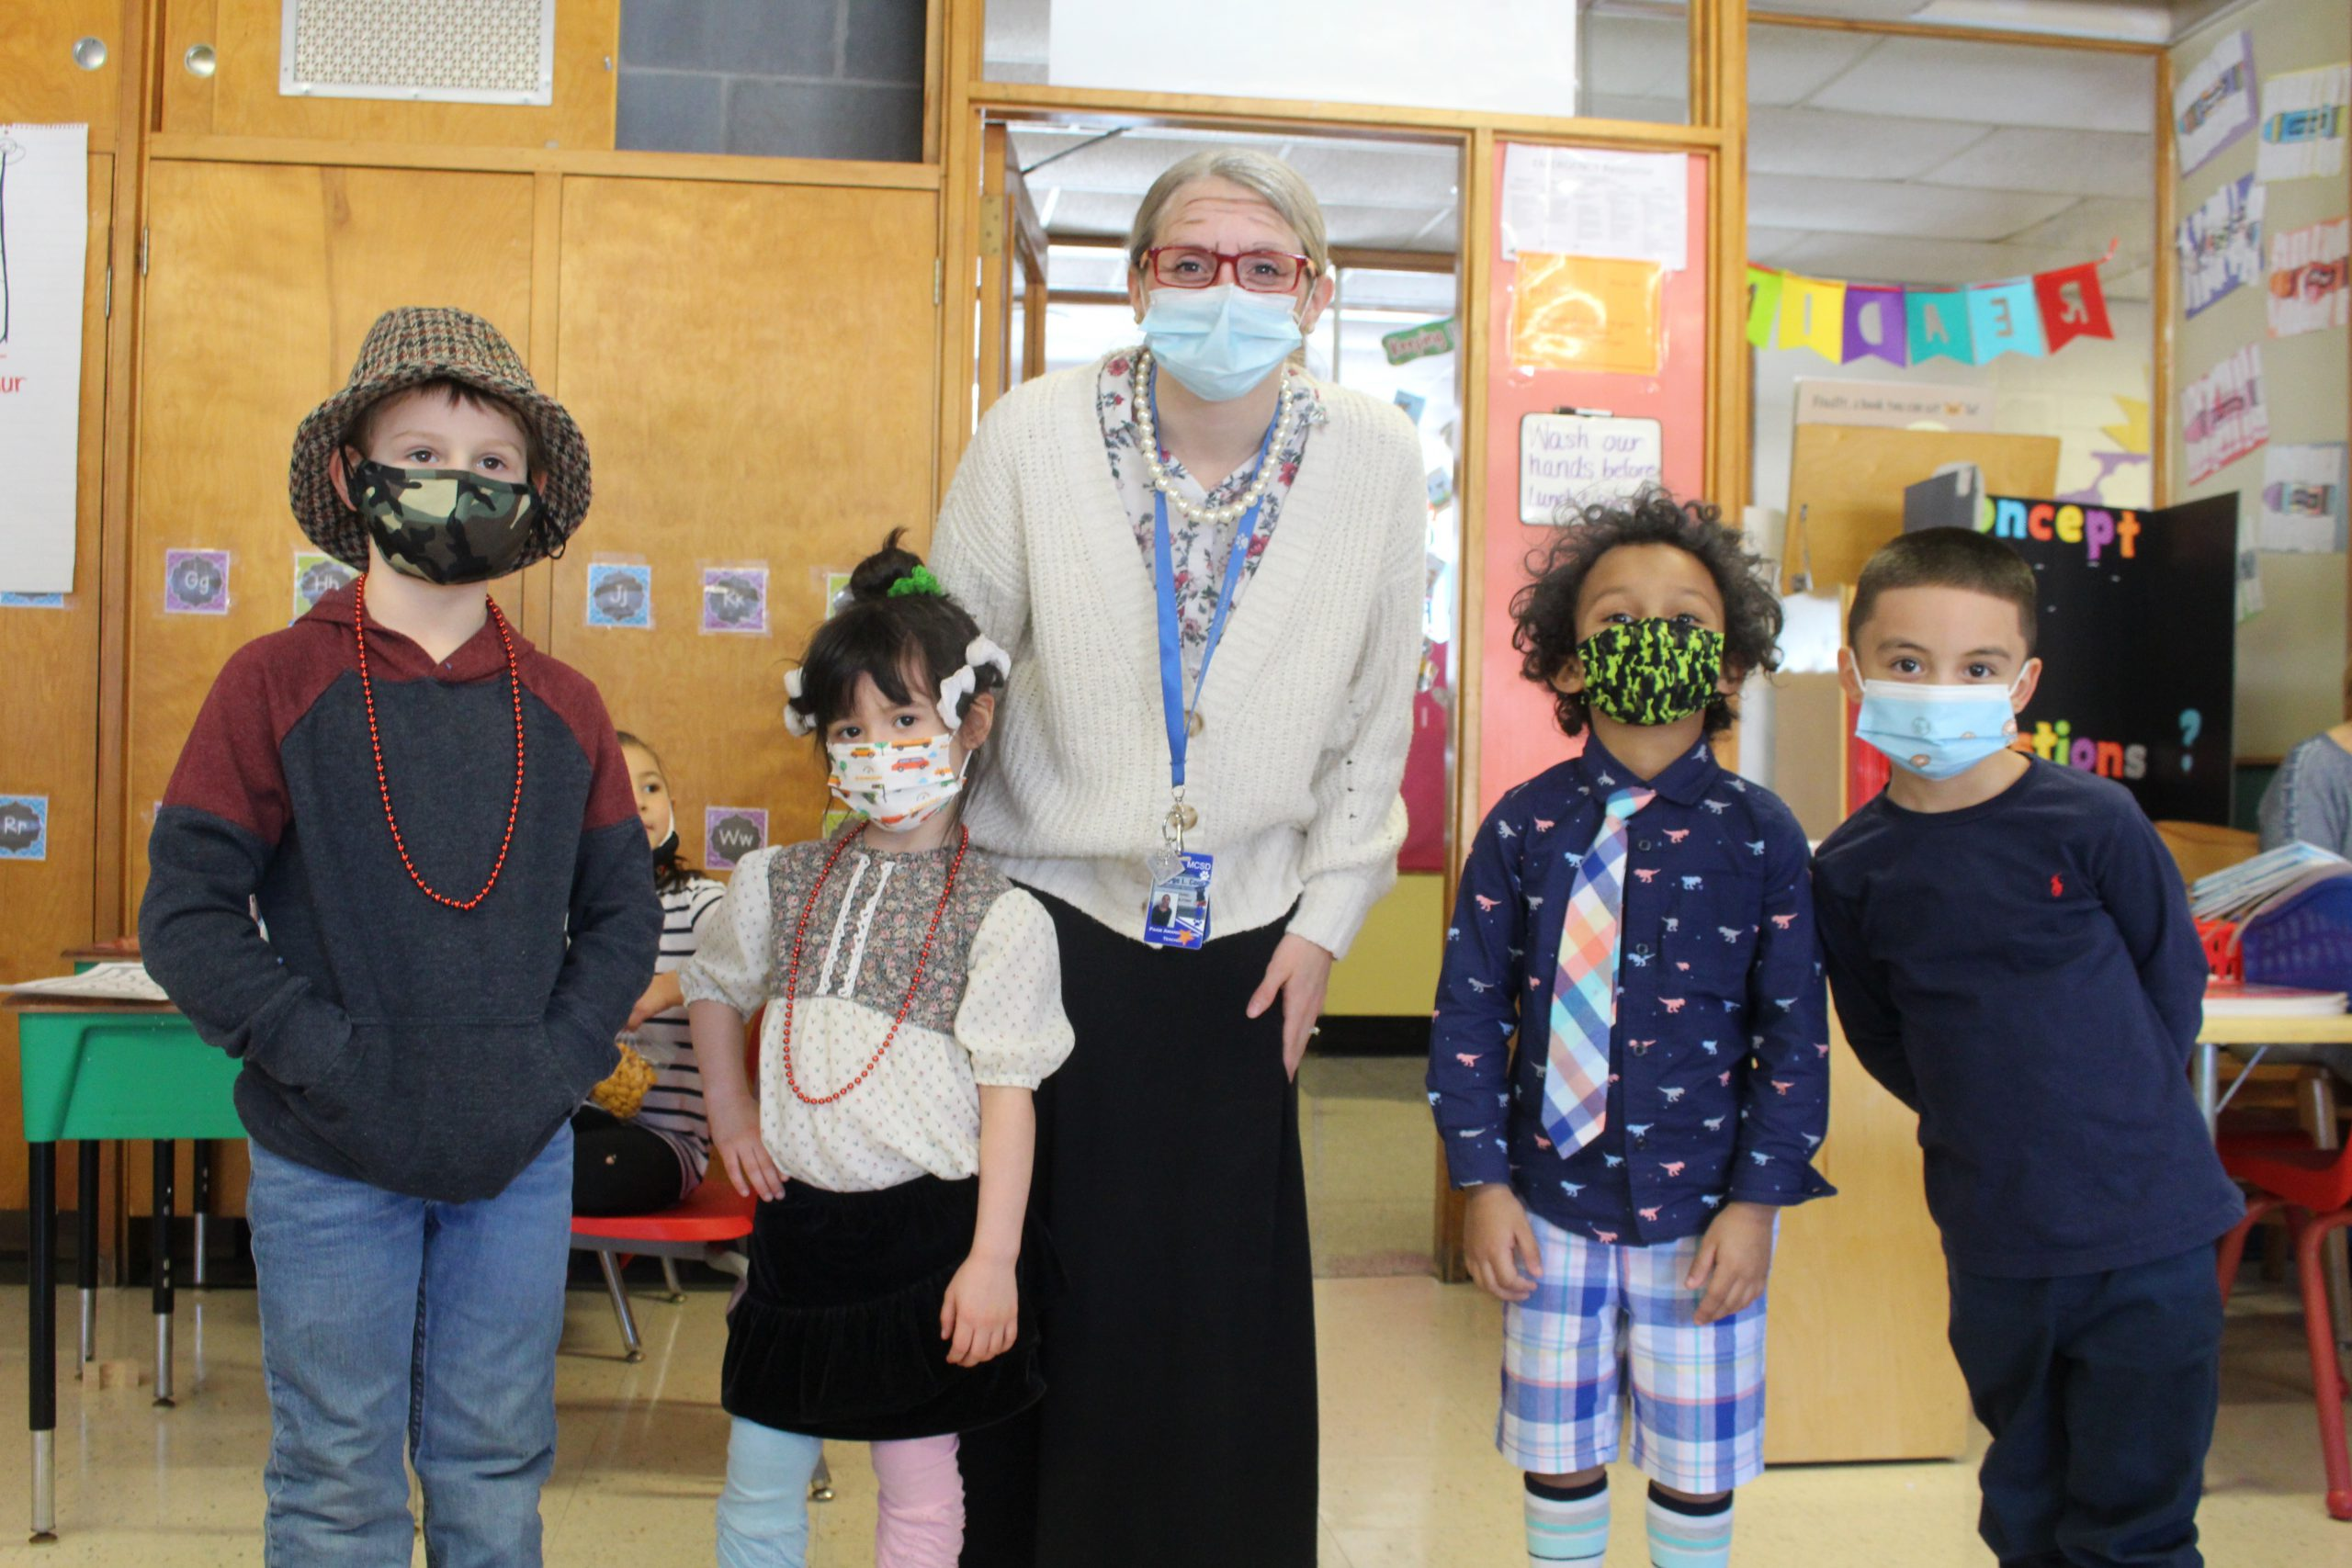 a teacher and students, all wearing centenarian costumes, are posting together and smiling